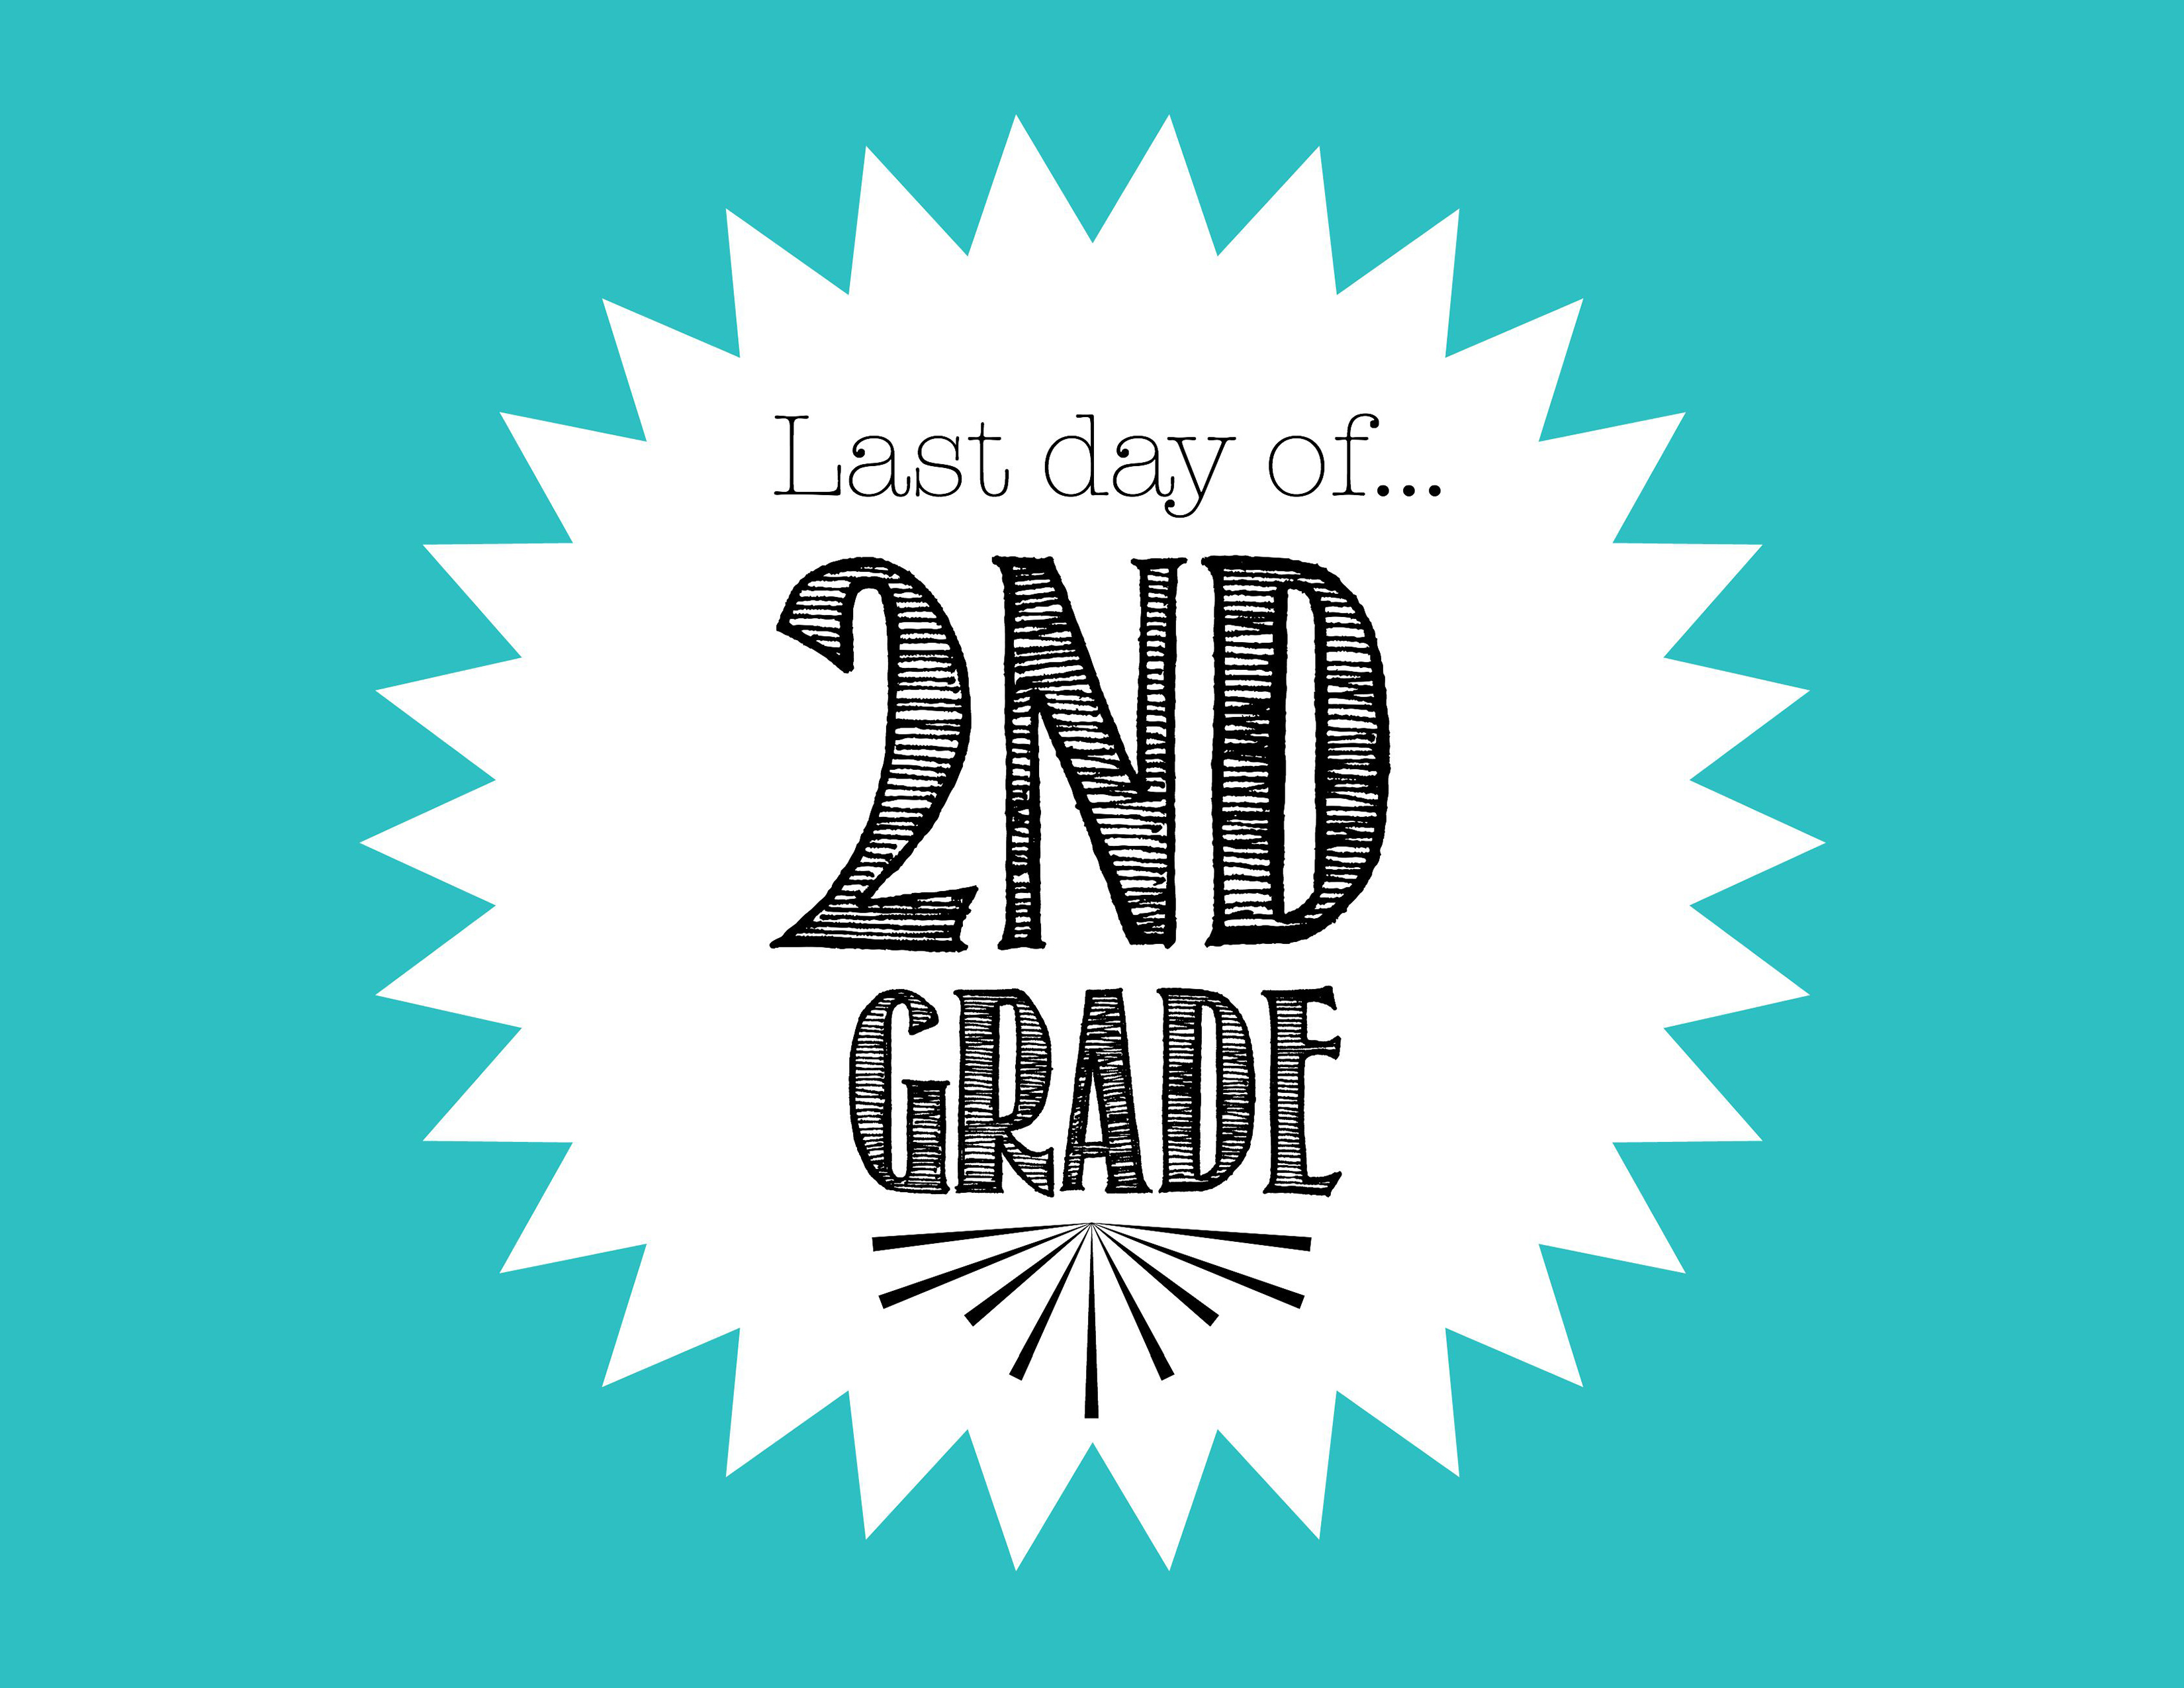 image about Last Day of 2nd Grade Printable referred to as Absolutely free Ultimate Working day of University Printable for 2nd Quality - Freebies2Promotions